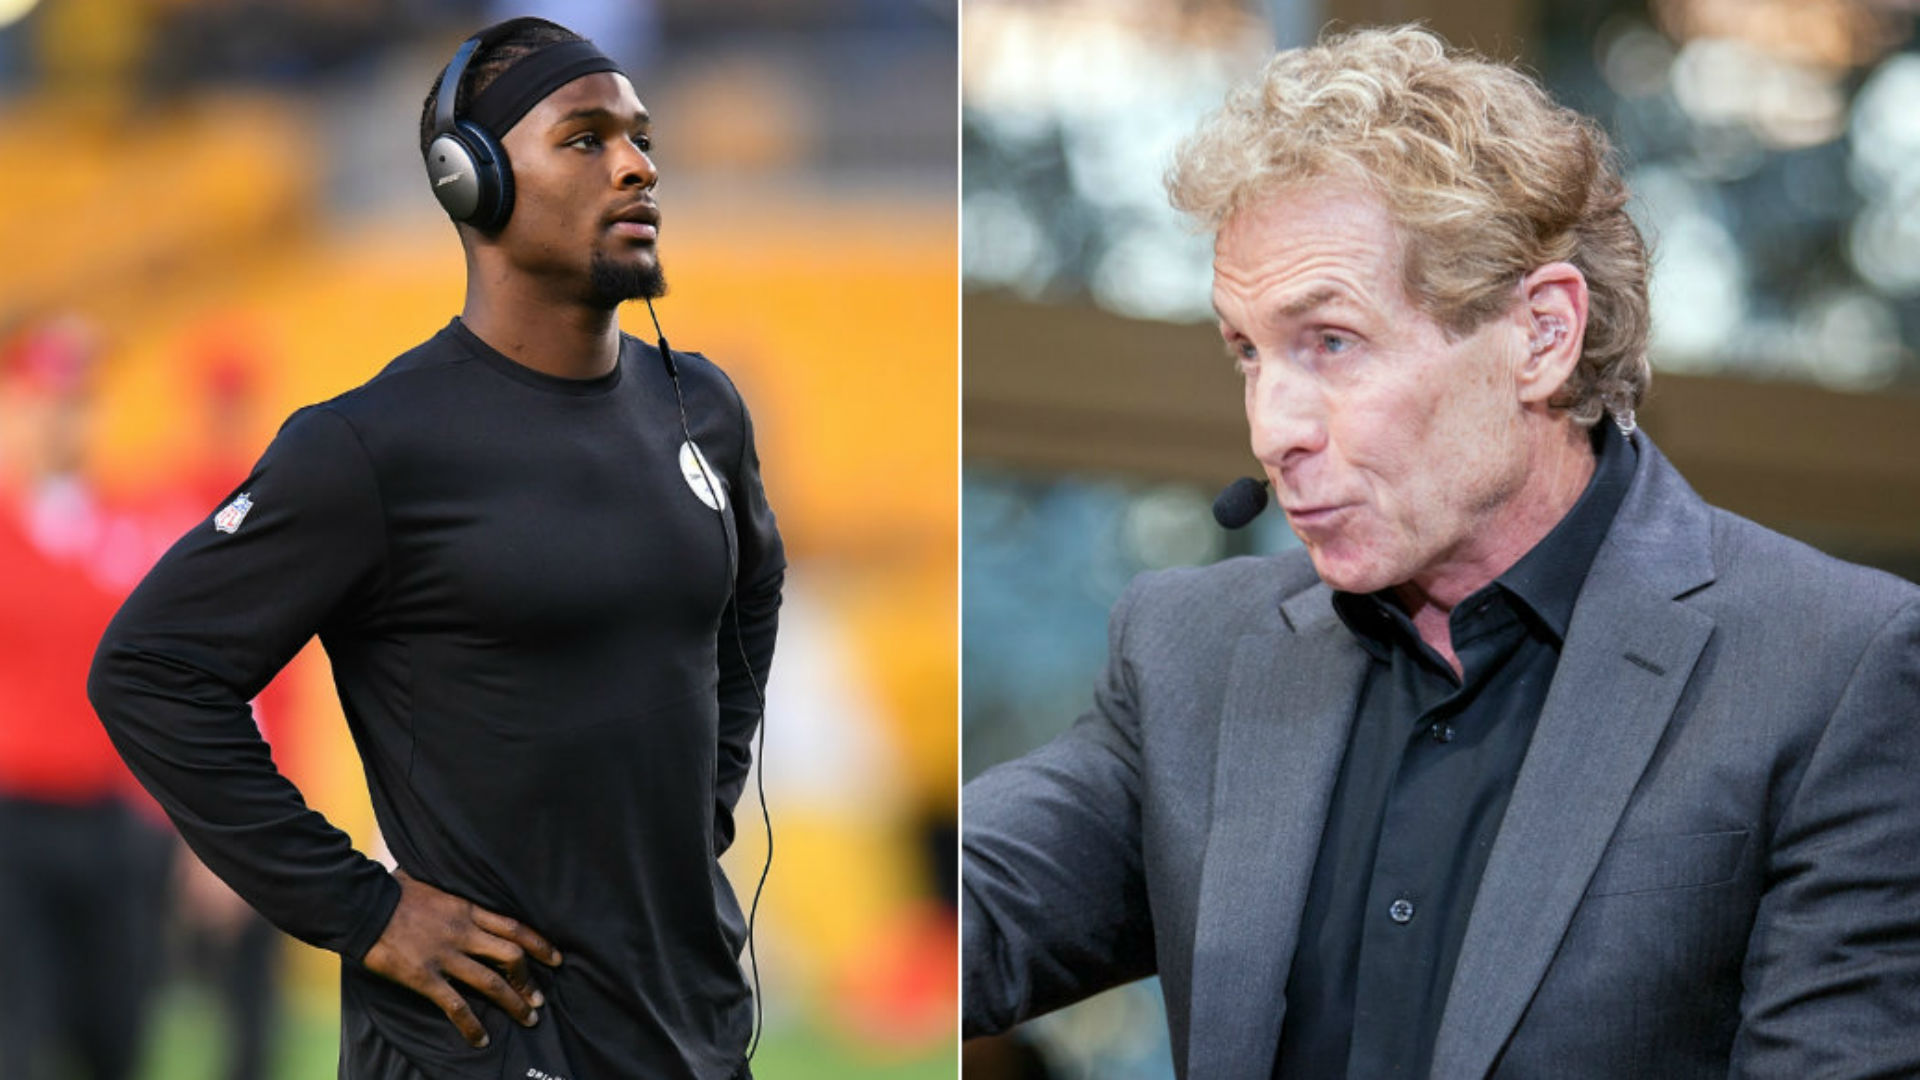 Le'Veon Bell drops a diss track on Skip Bayless